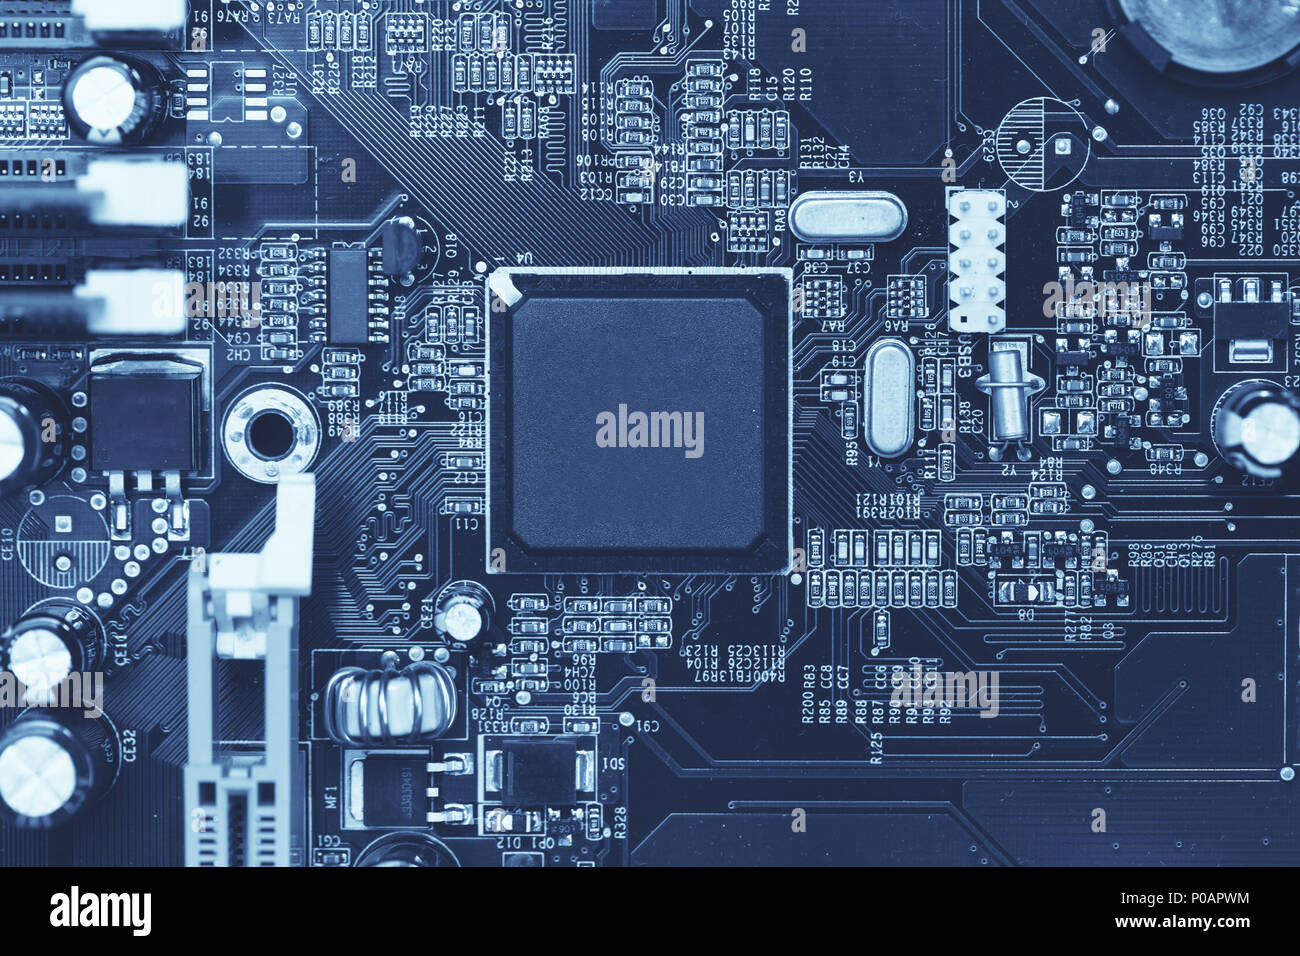 Chipset Stock Photos Images Alamy Circuit Symbols Innovation Celebrities Electronics Components Computer Electronic Silicon Chip In Digital Microprocessor Image